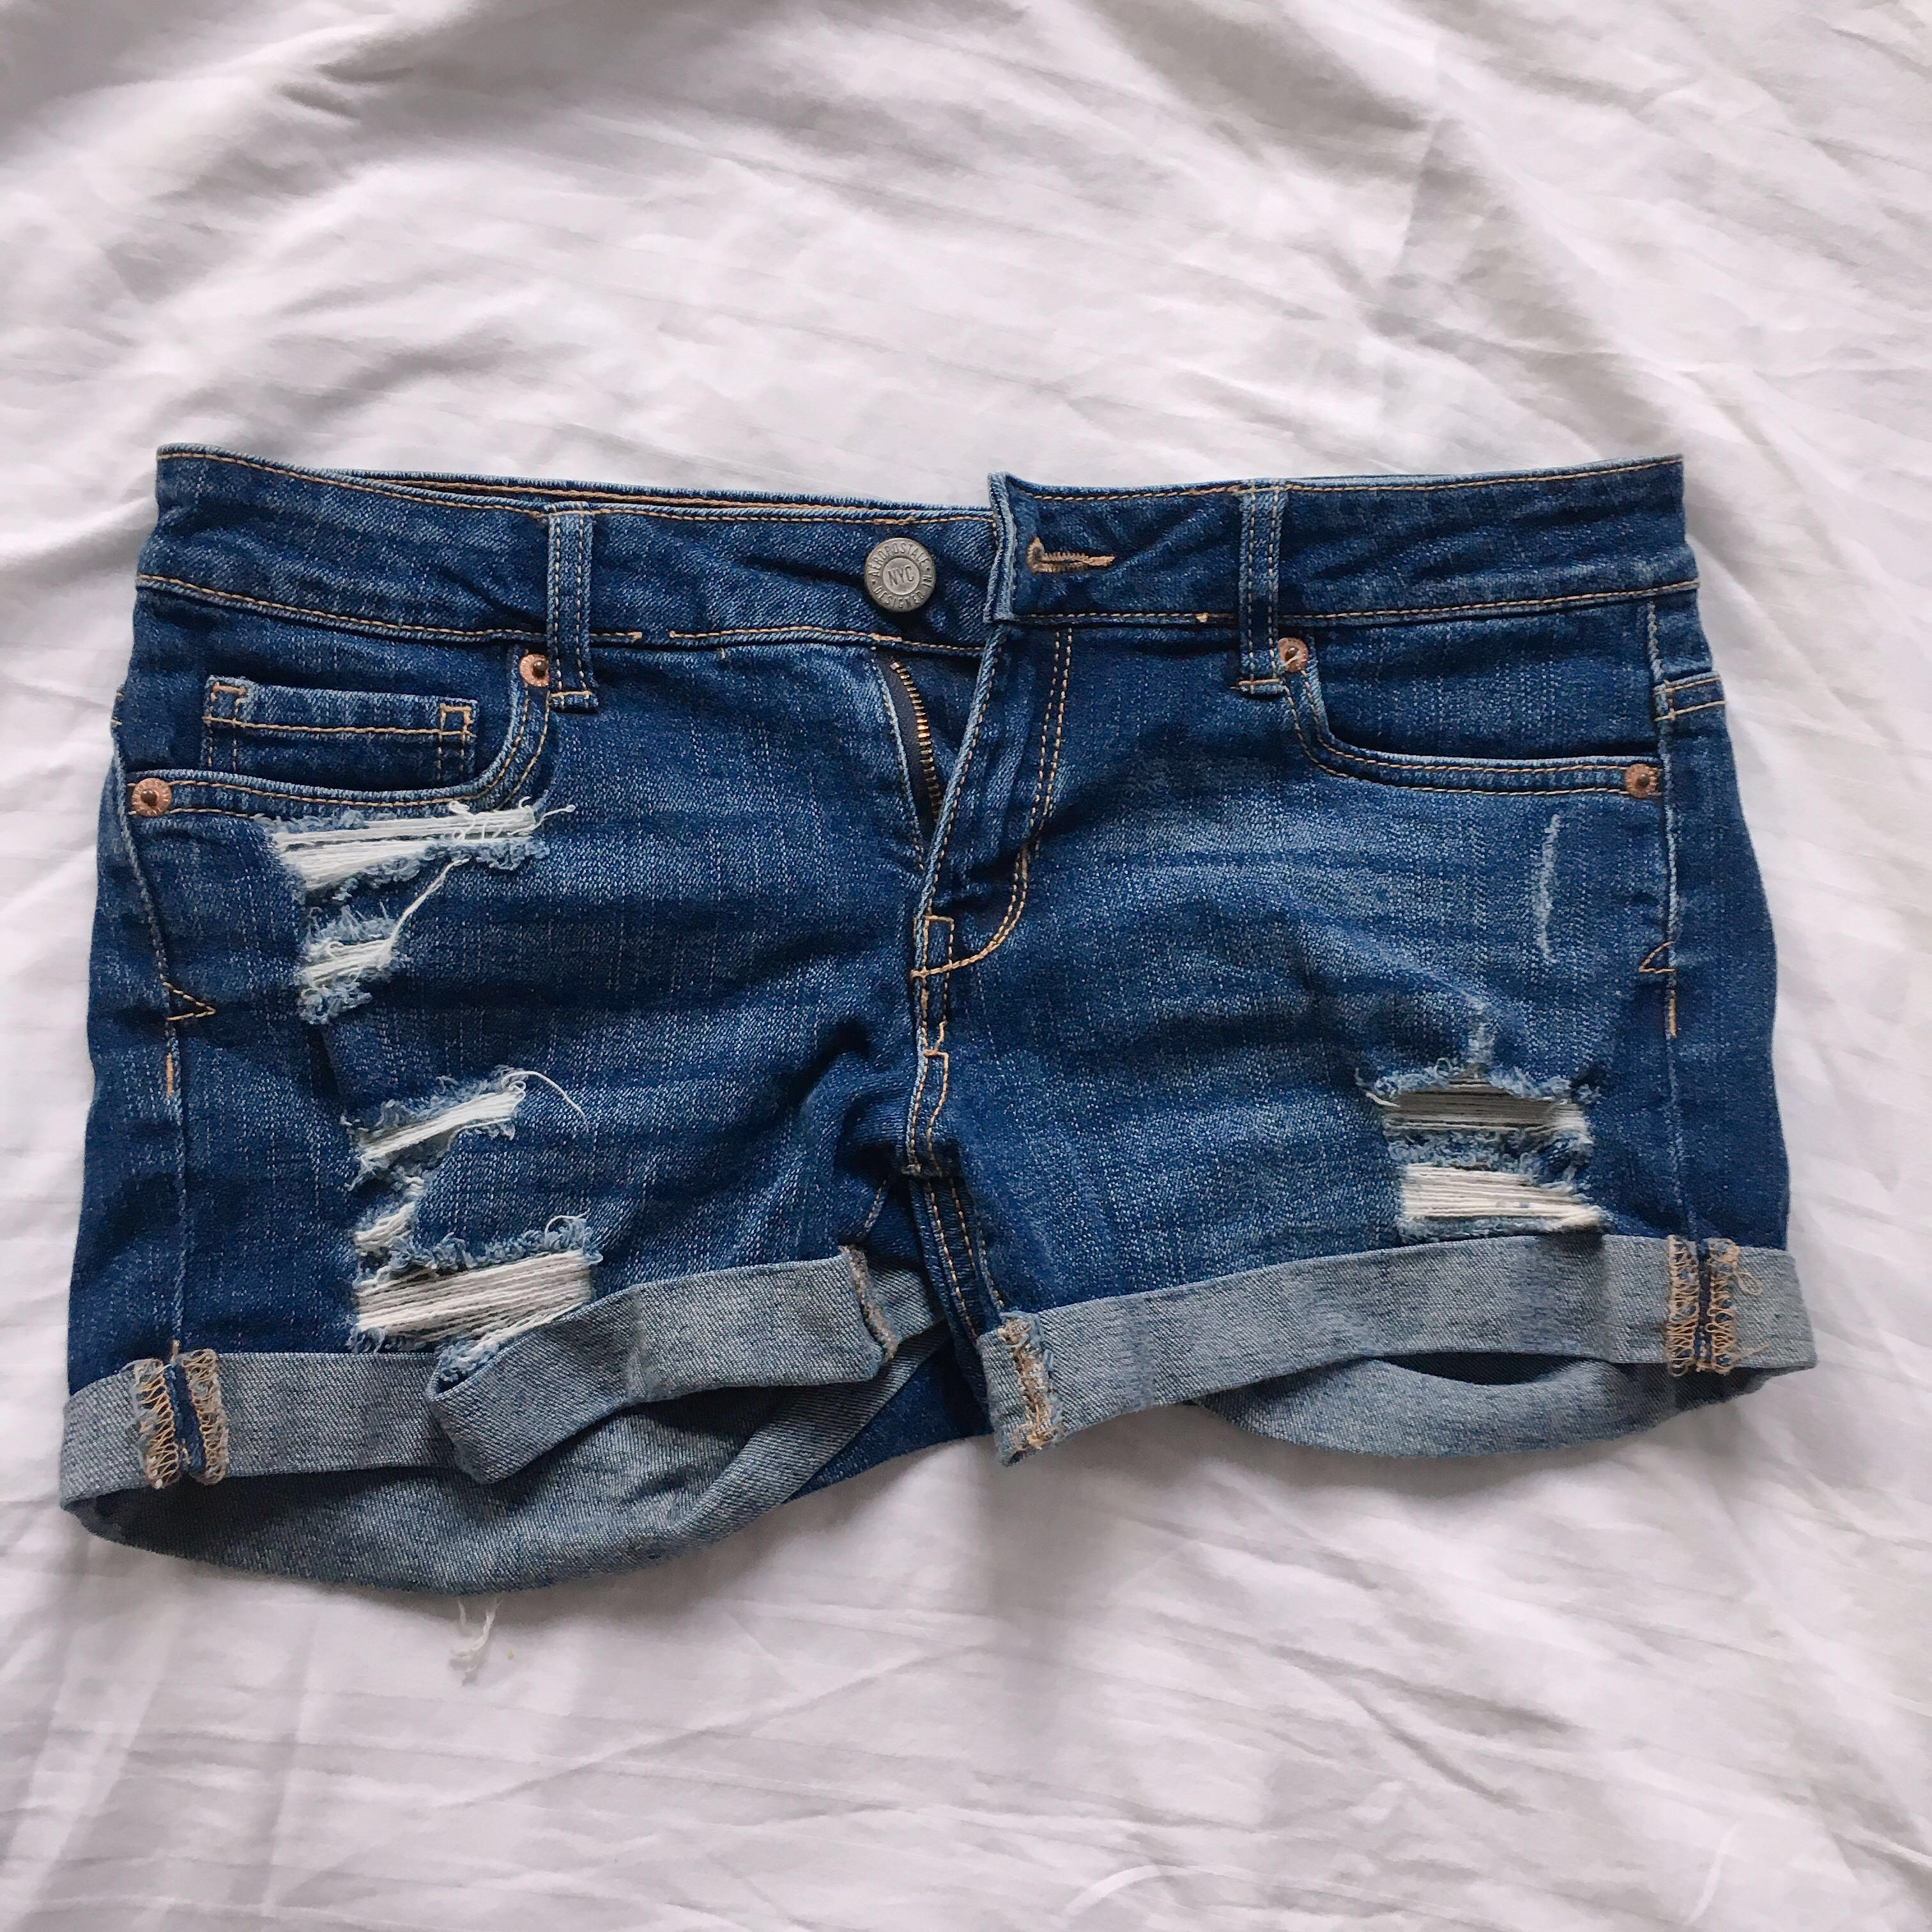 66afe211a3 authentic aeropostale ripped denim shorts, Women's Fashion, Clothes ...